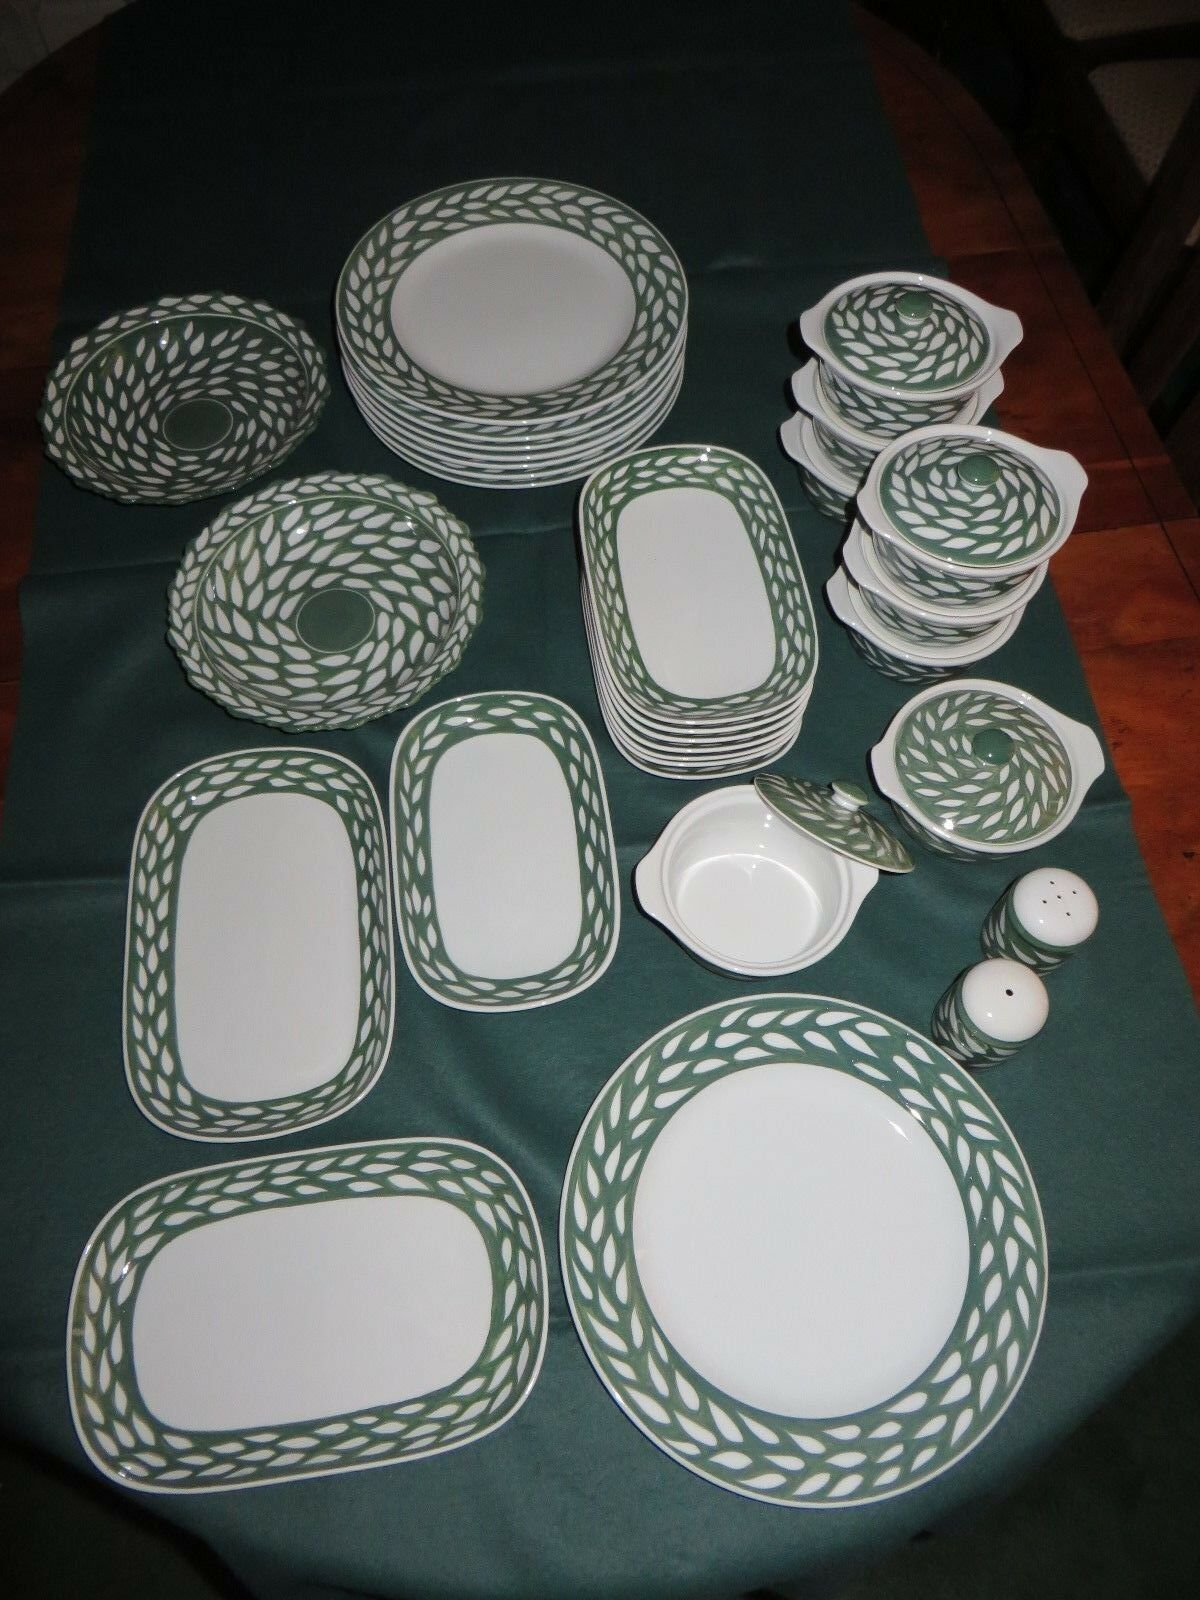 NEW - 29 pcs HANDPAINTED THAI GREEN & WHITE DINNER SERVICE FOR 8 PERSONS (GWL-1)